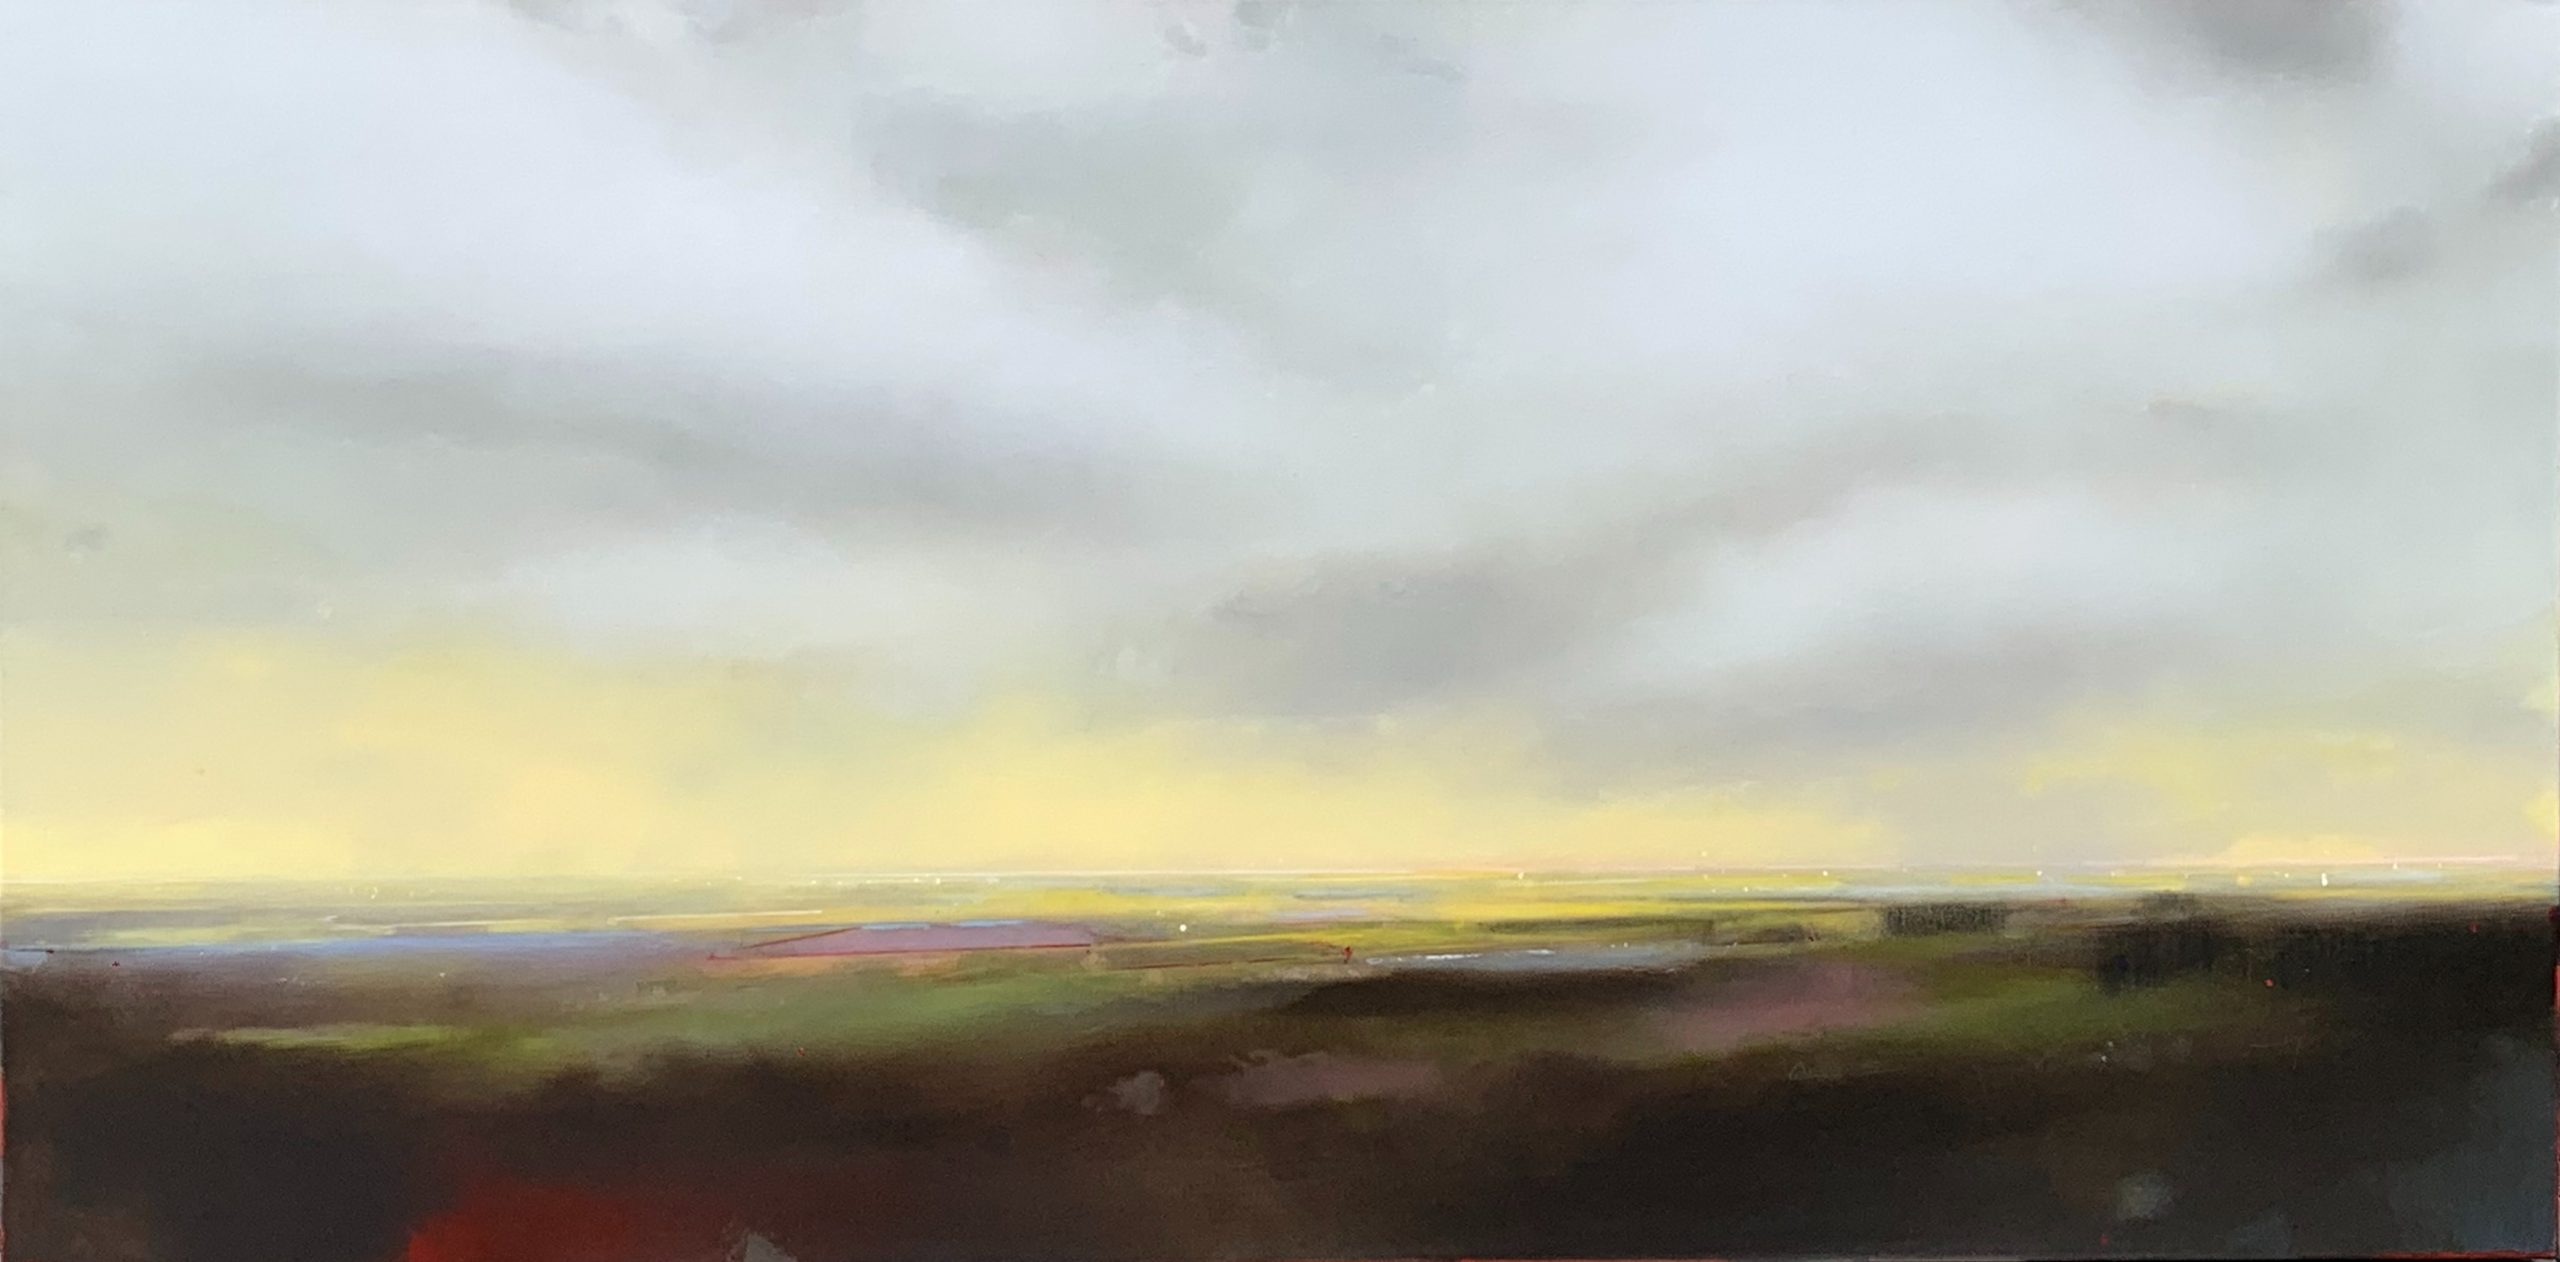 Morning Light 4, landscape and sky painting by Joe Fidia | Effusion Art Gallery + Cast Glass Studio, Invermere BC